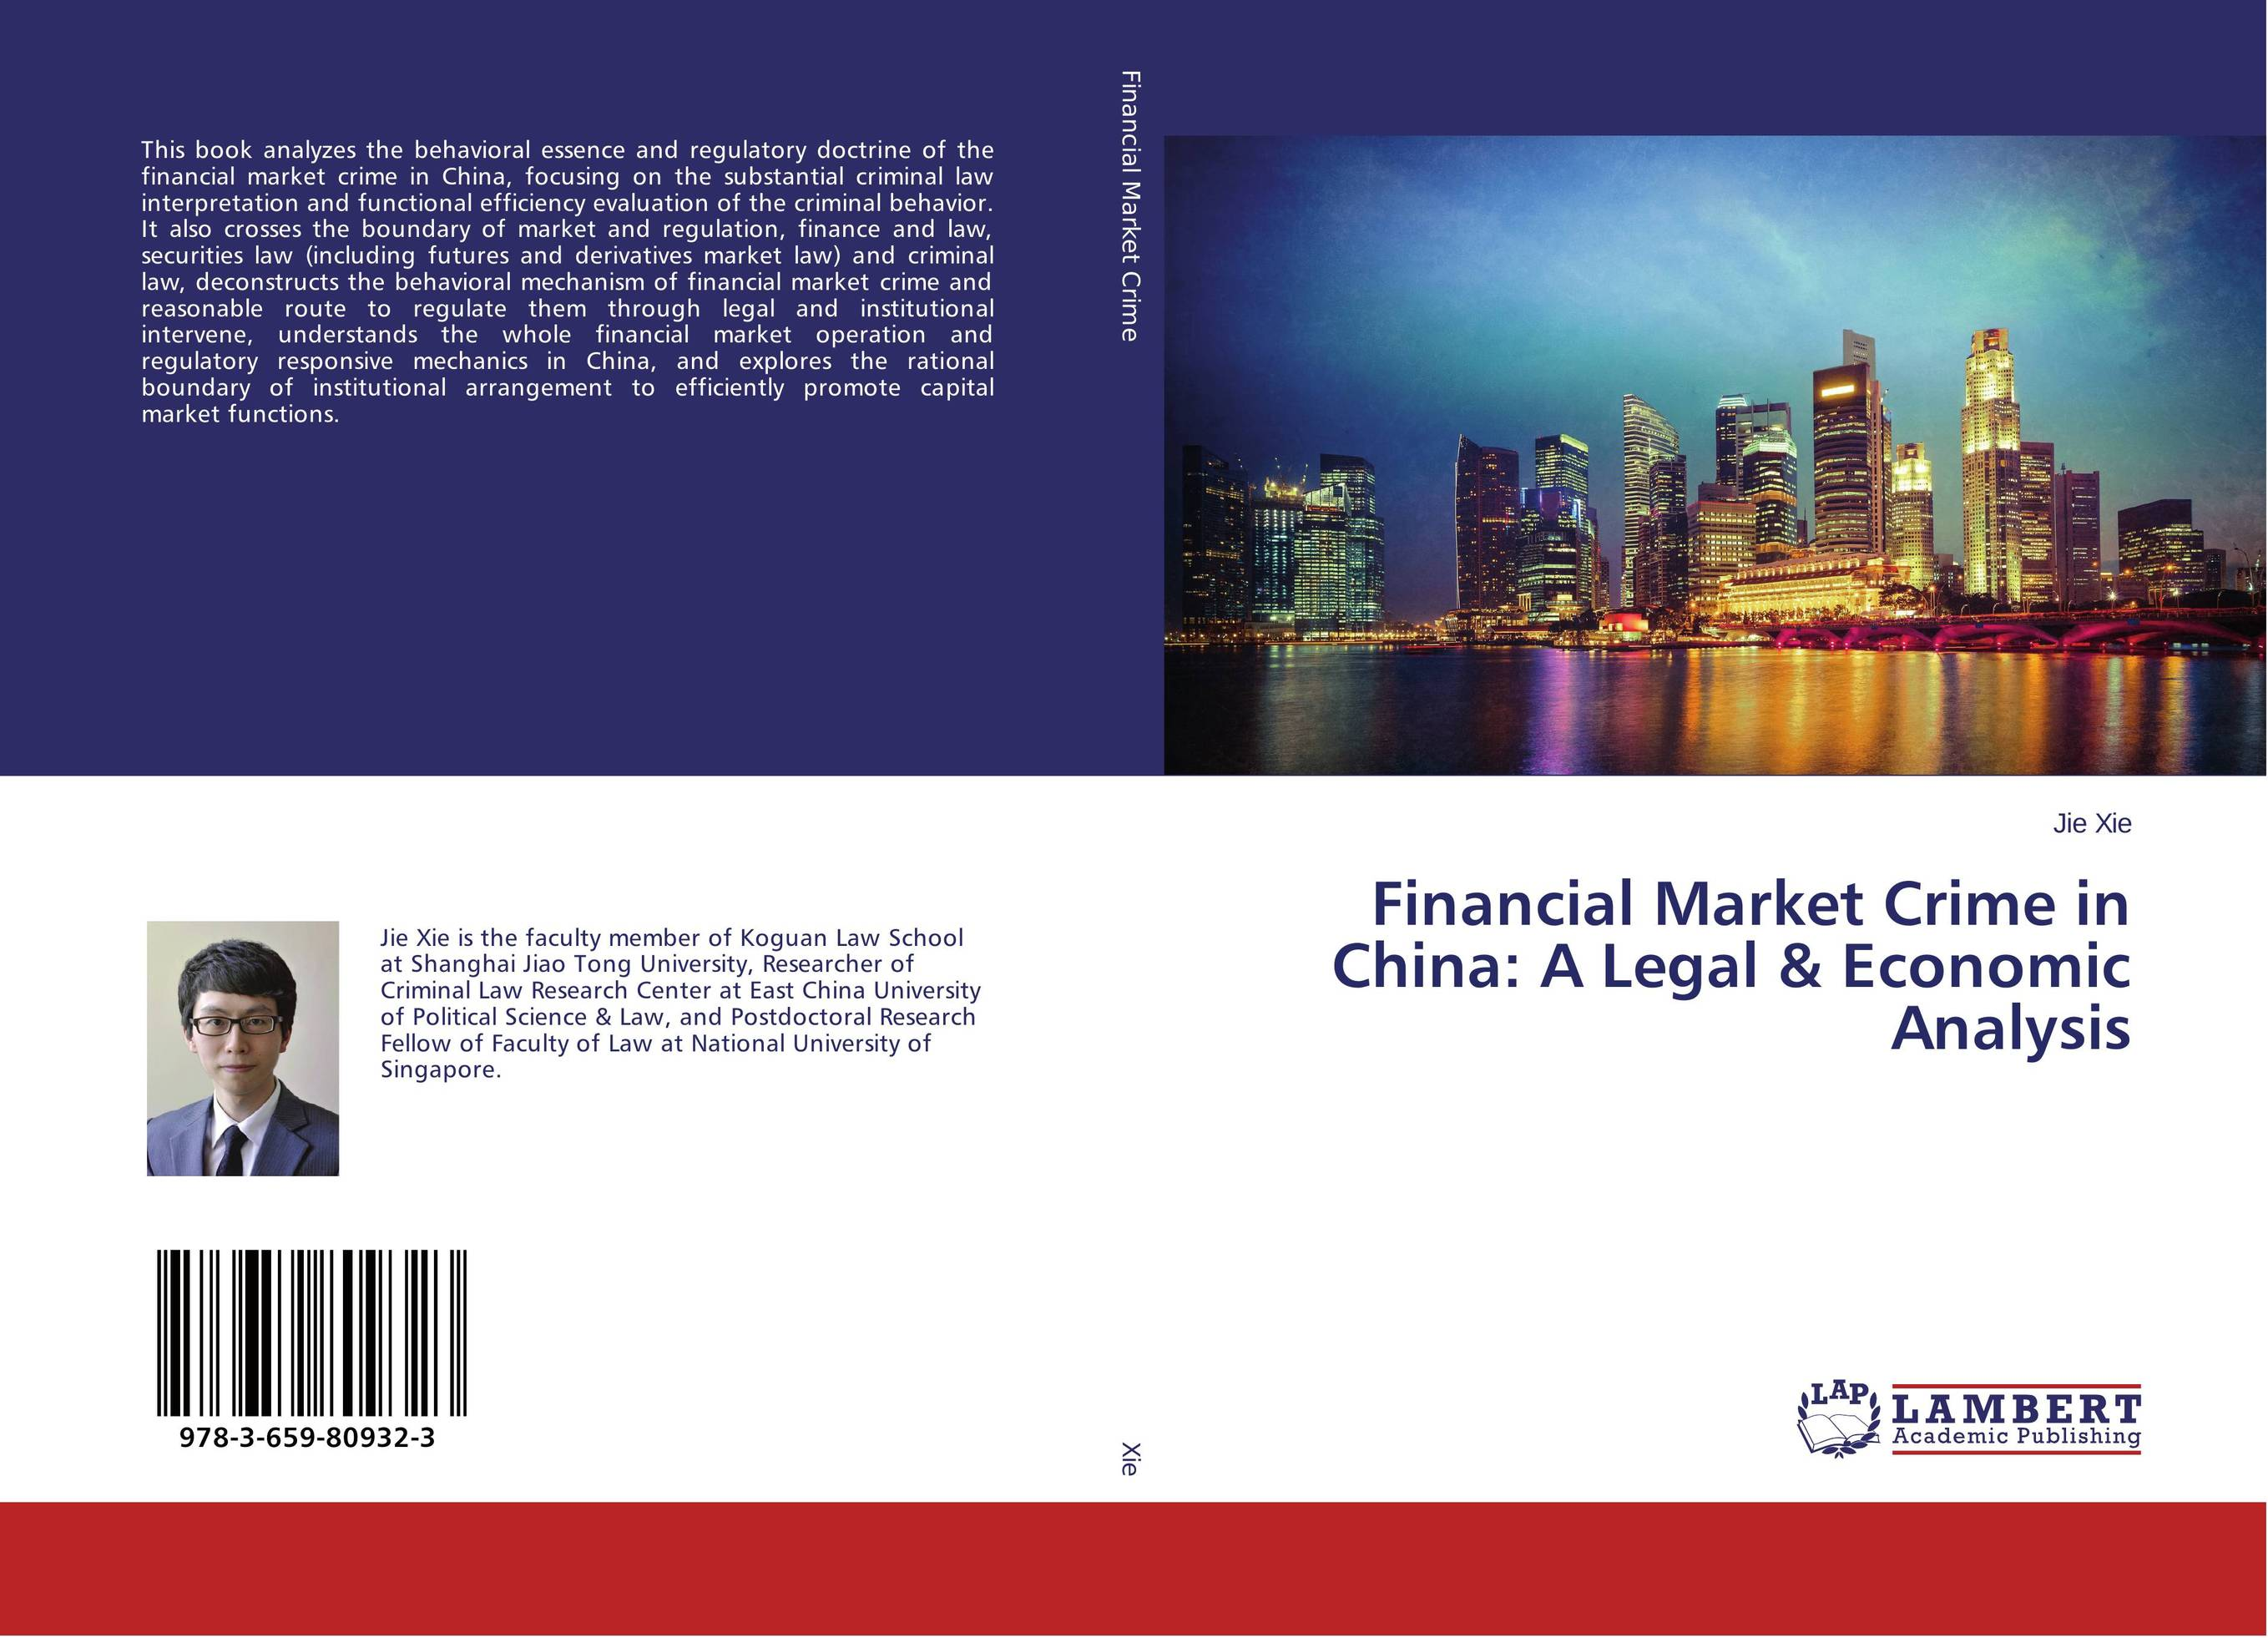 Financial Market Crime in China: A Legal & Economic Analysis word meaning and legal interpretation